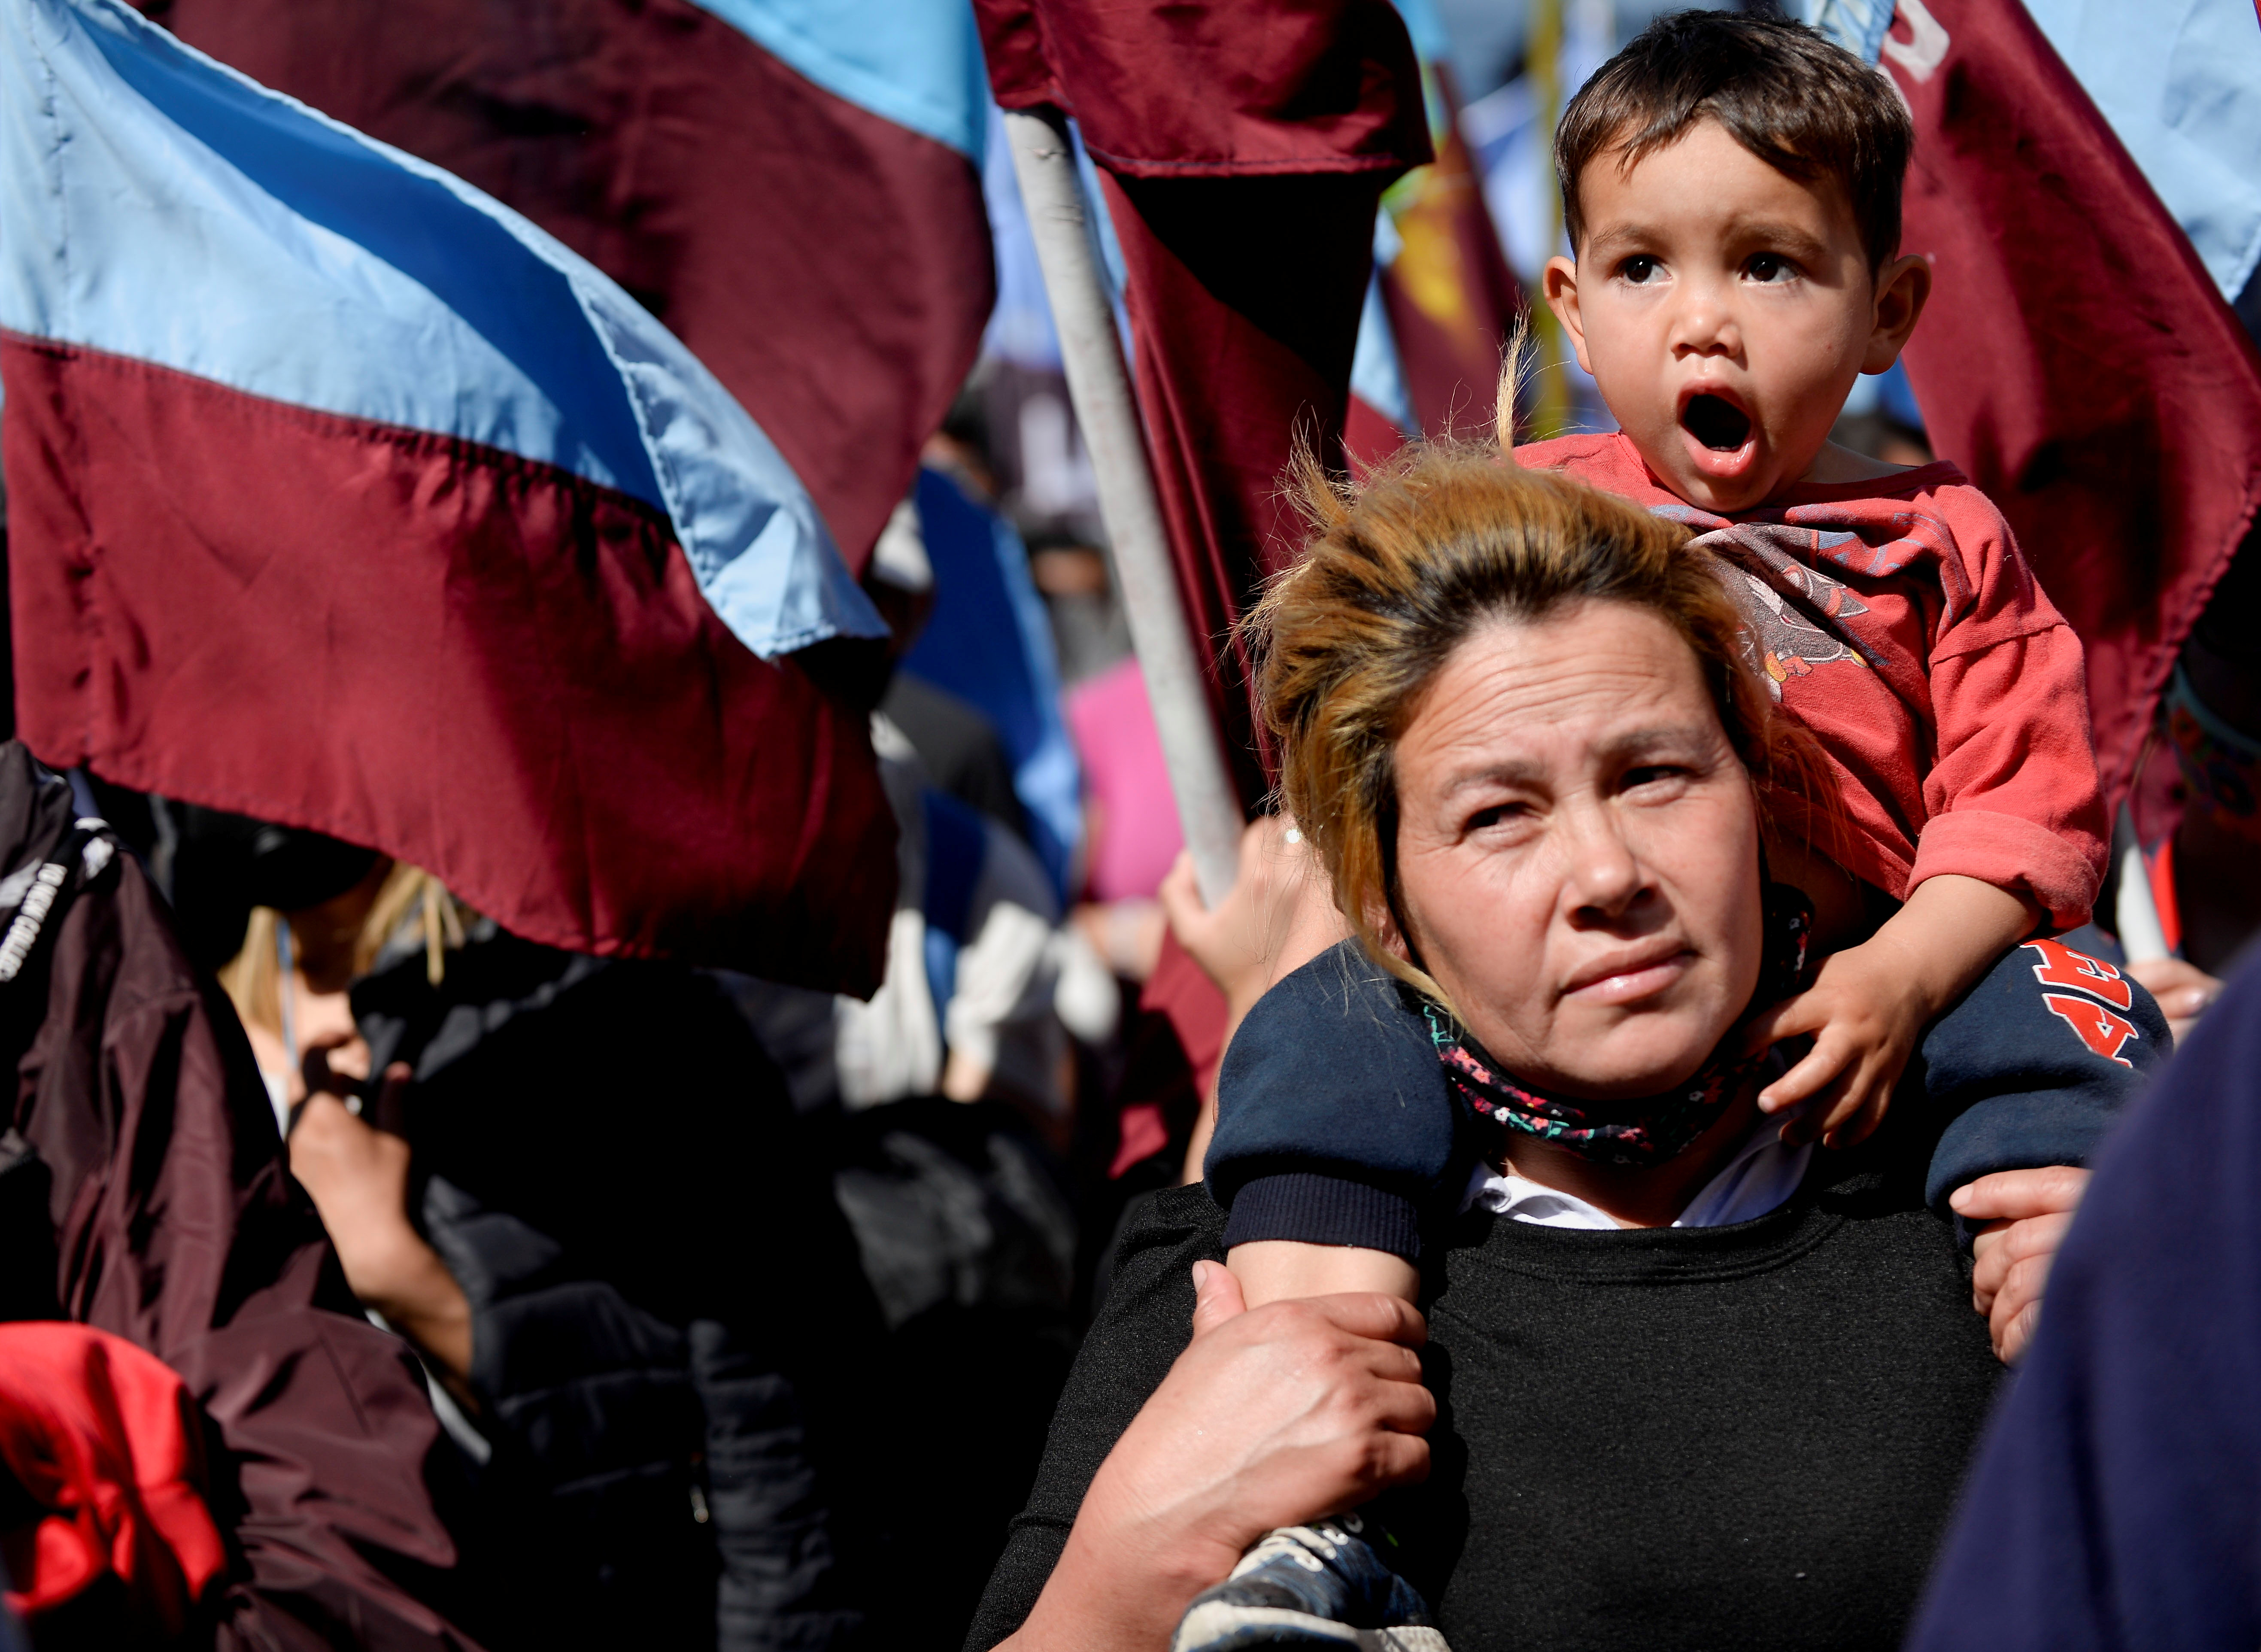 A mother carries her son as they march to protest against unemployment, food insecurity and lack of resources, in Buenos Aires, Argentina September 16, 2021.  REUTERS/Mariana Nedelcu